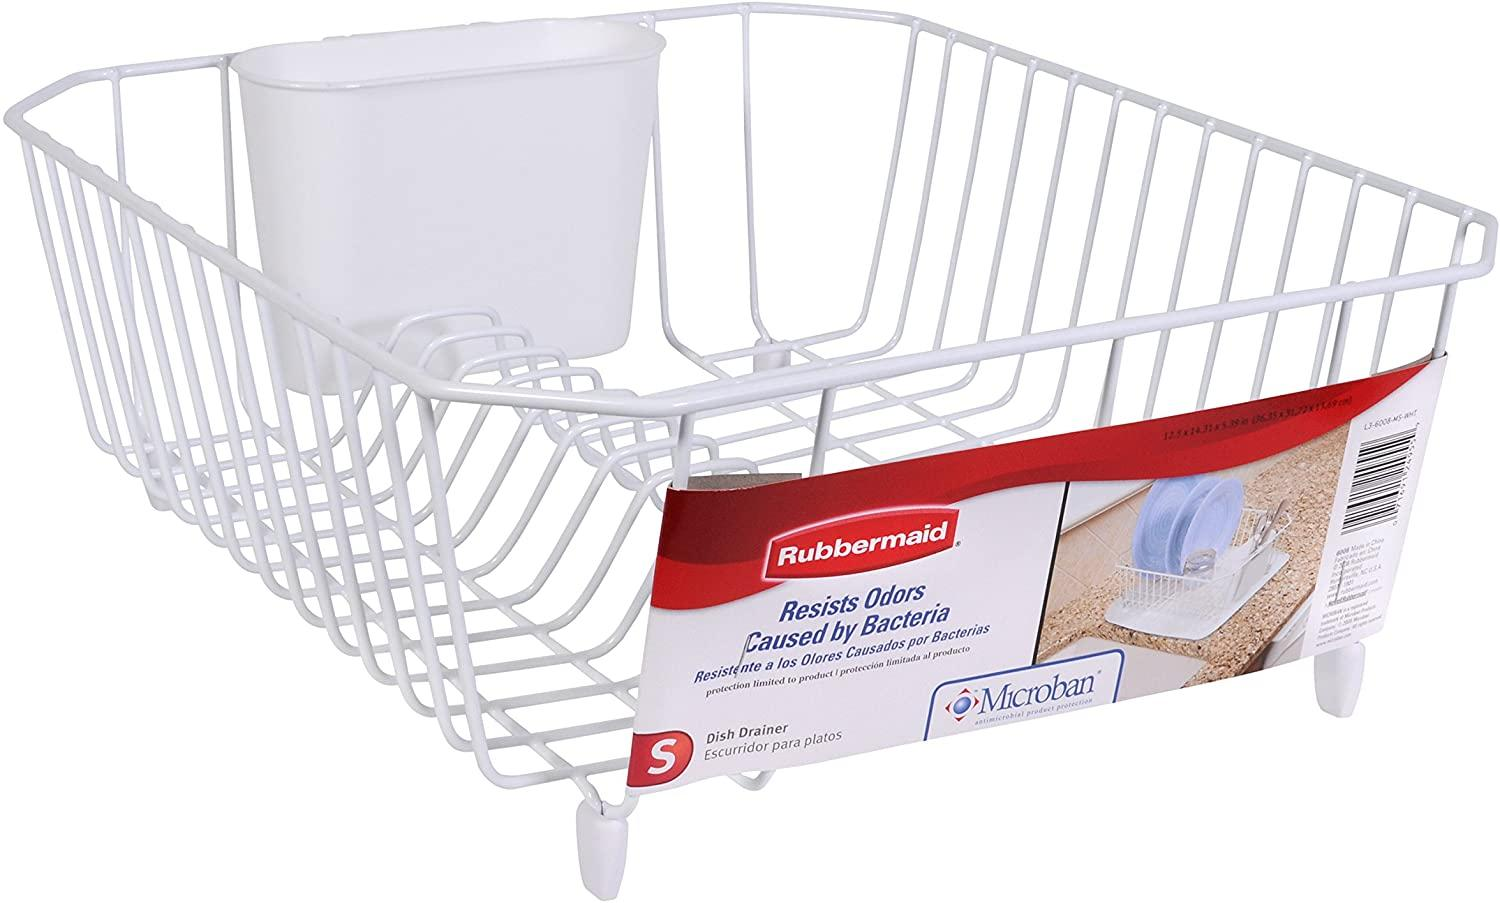 Rubbermaid Antimicrobial Dish Drainer, Small, White 1858900